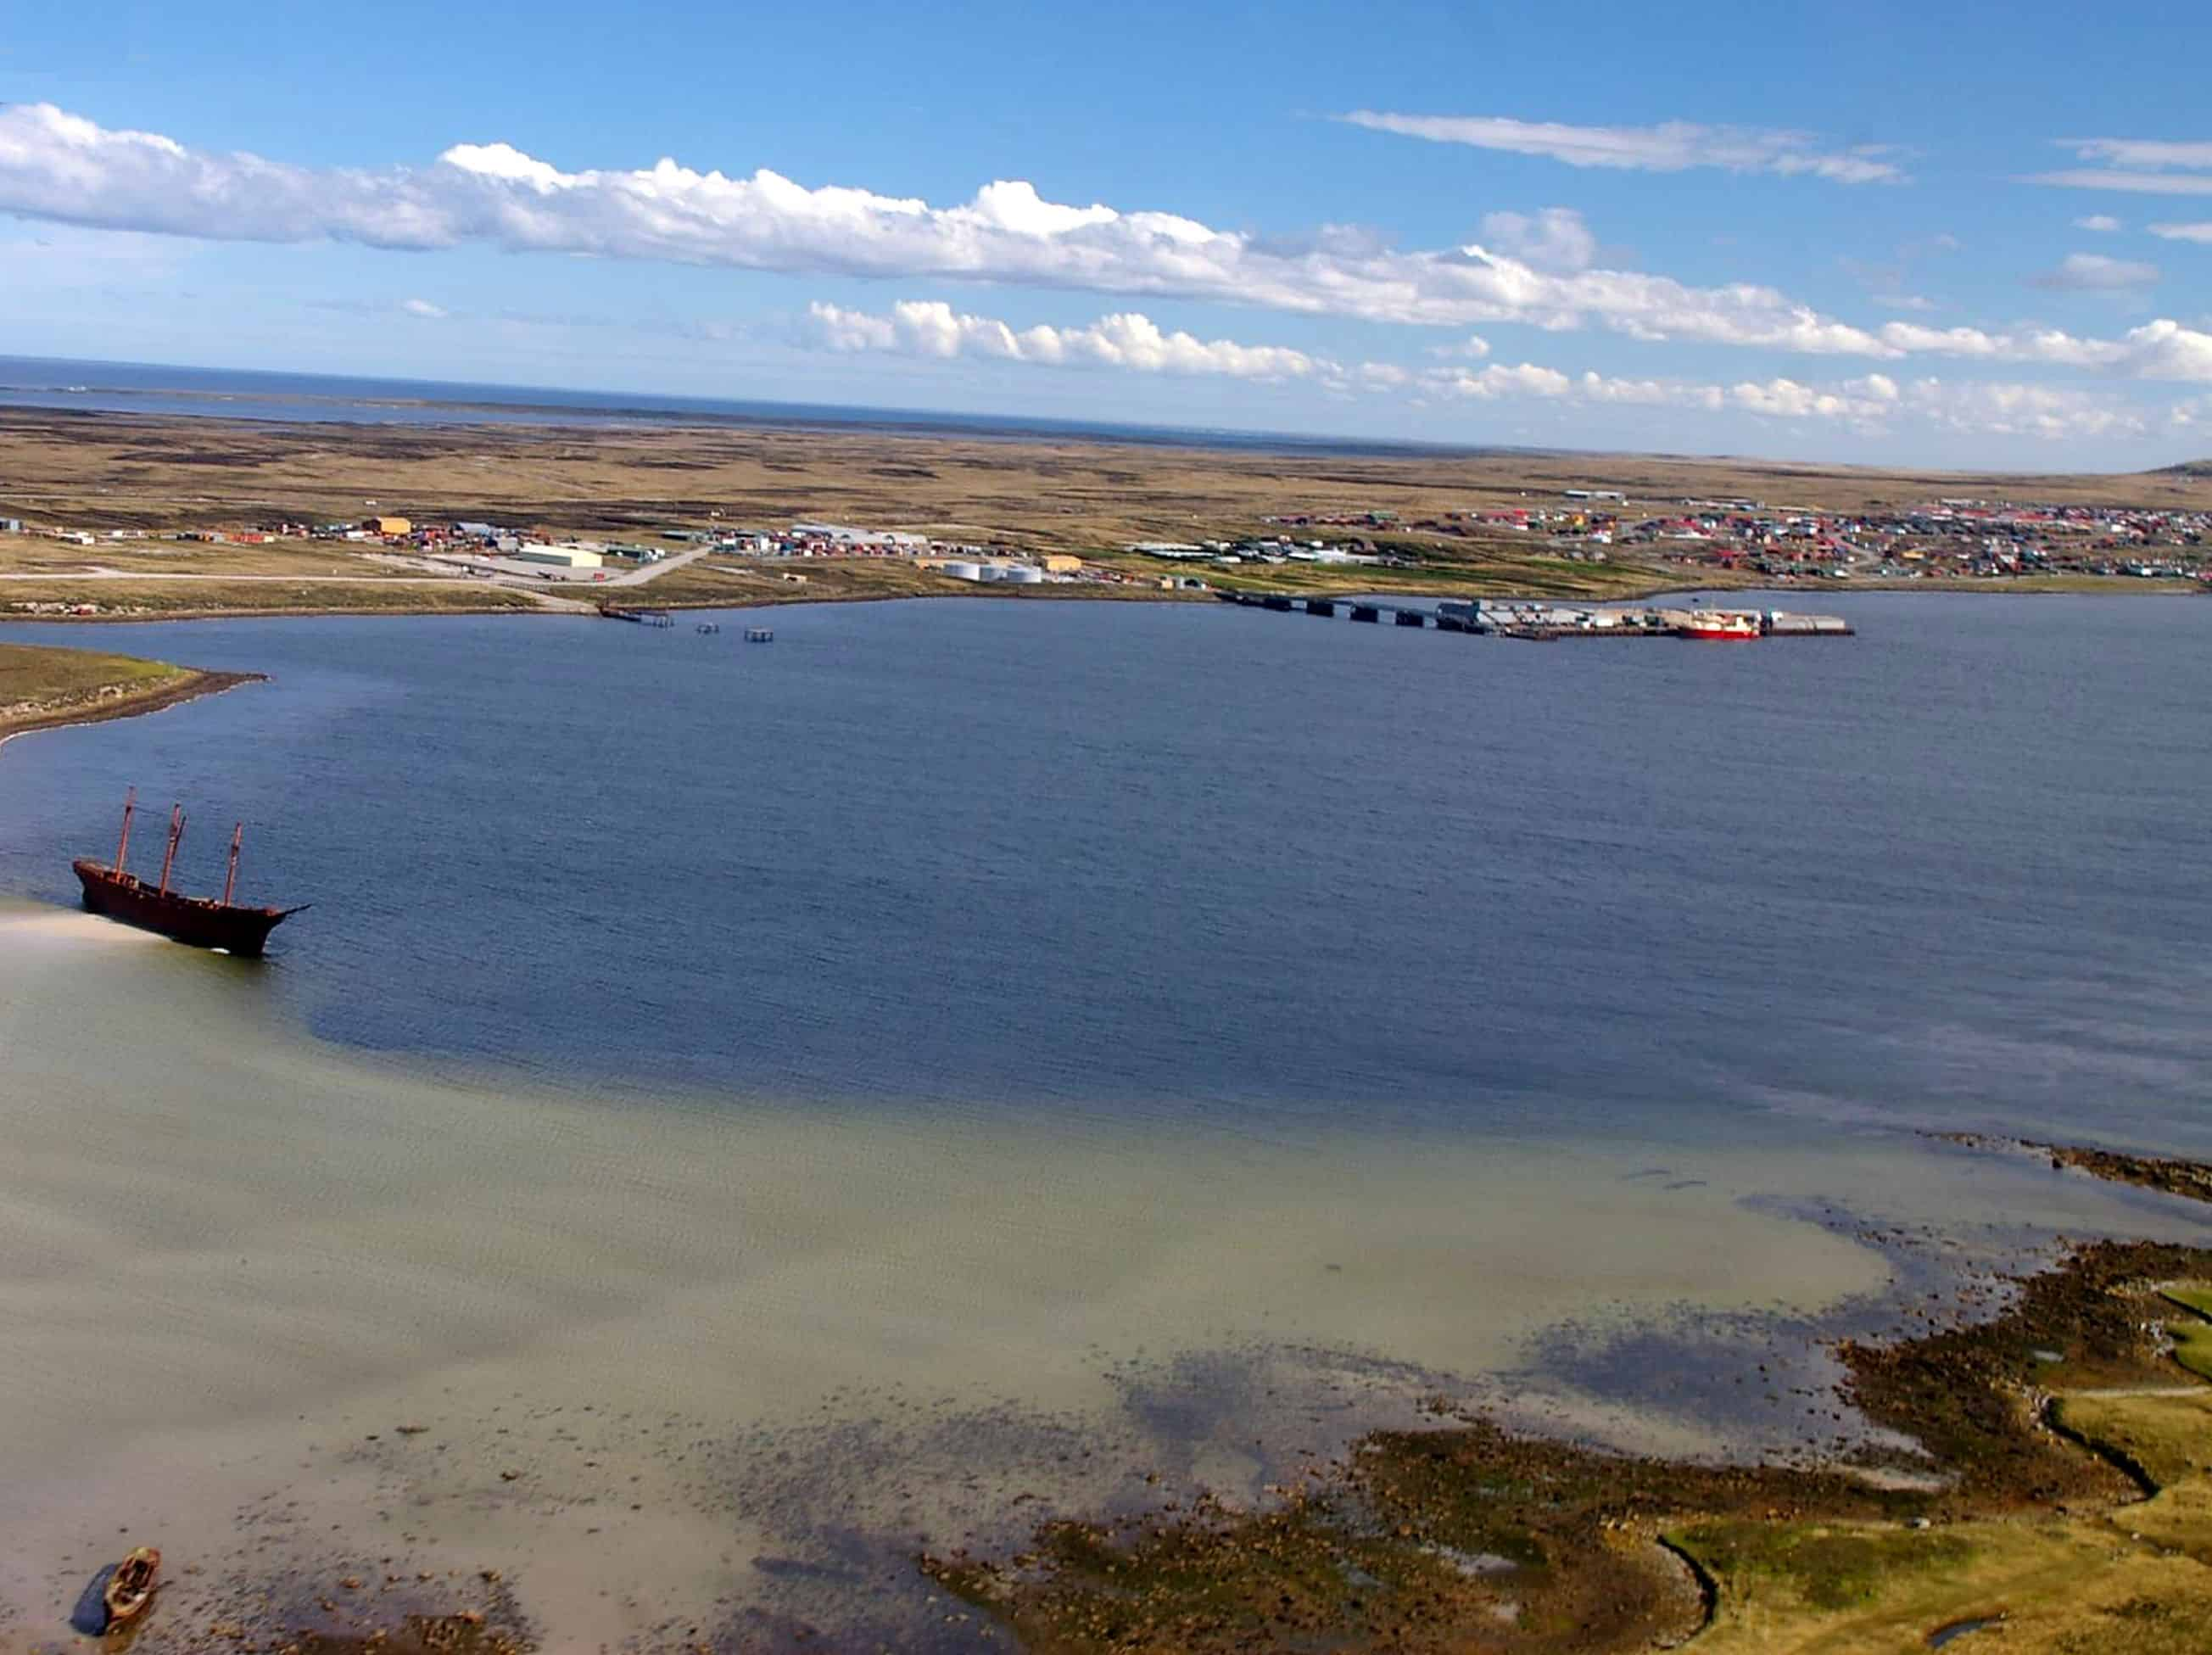 Stanley Harbour, Falkland Islands, March 21, 2007.